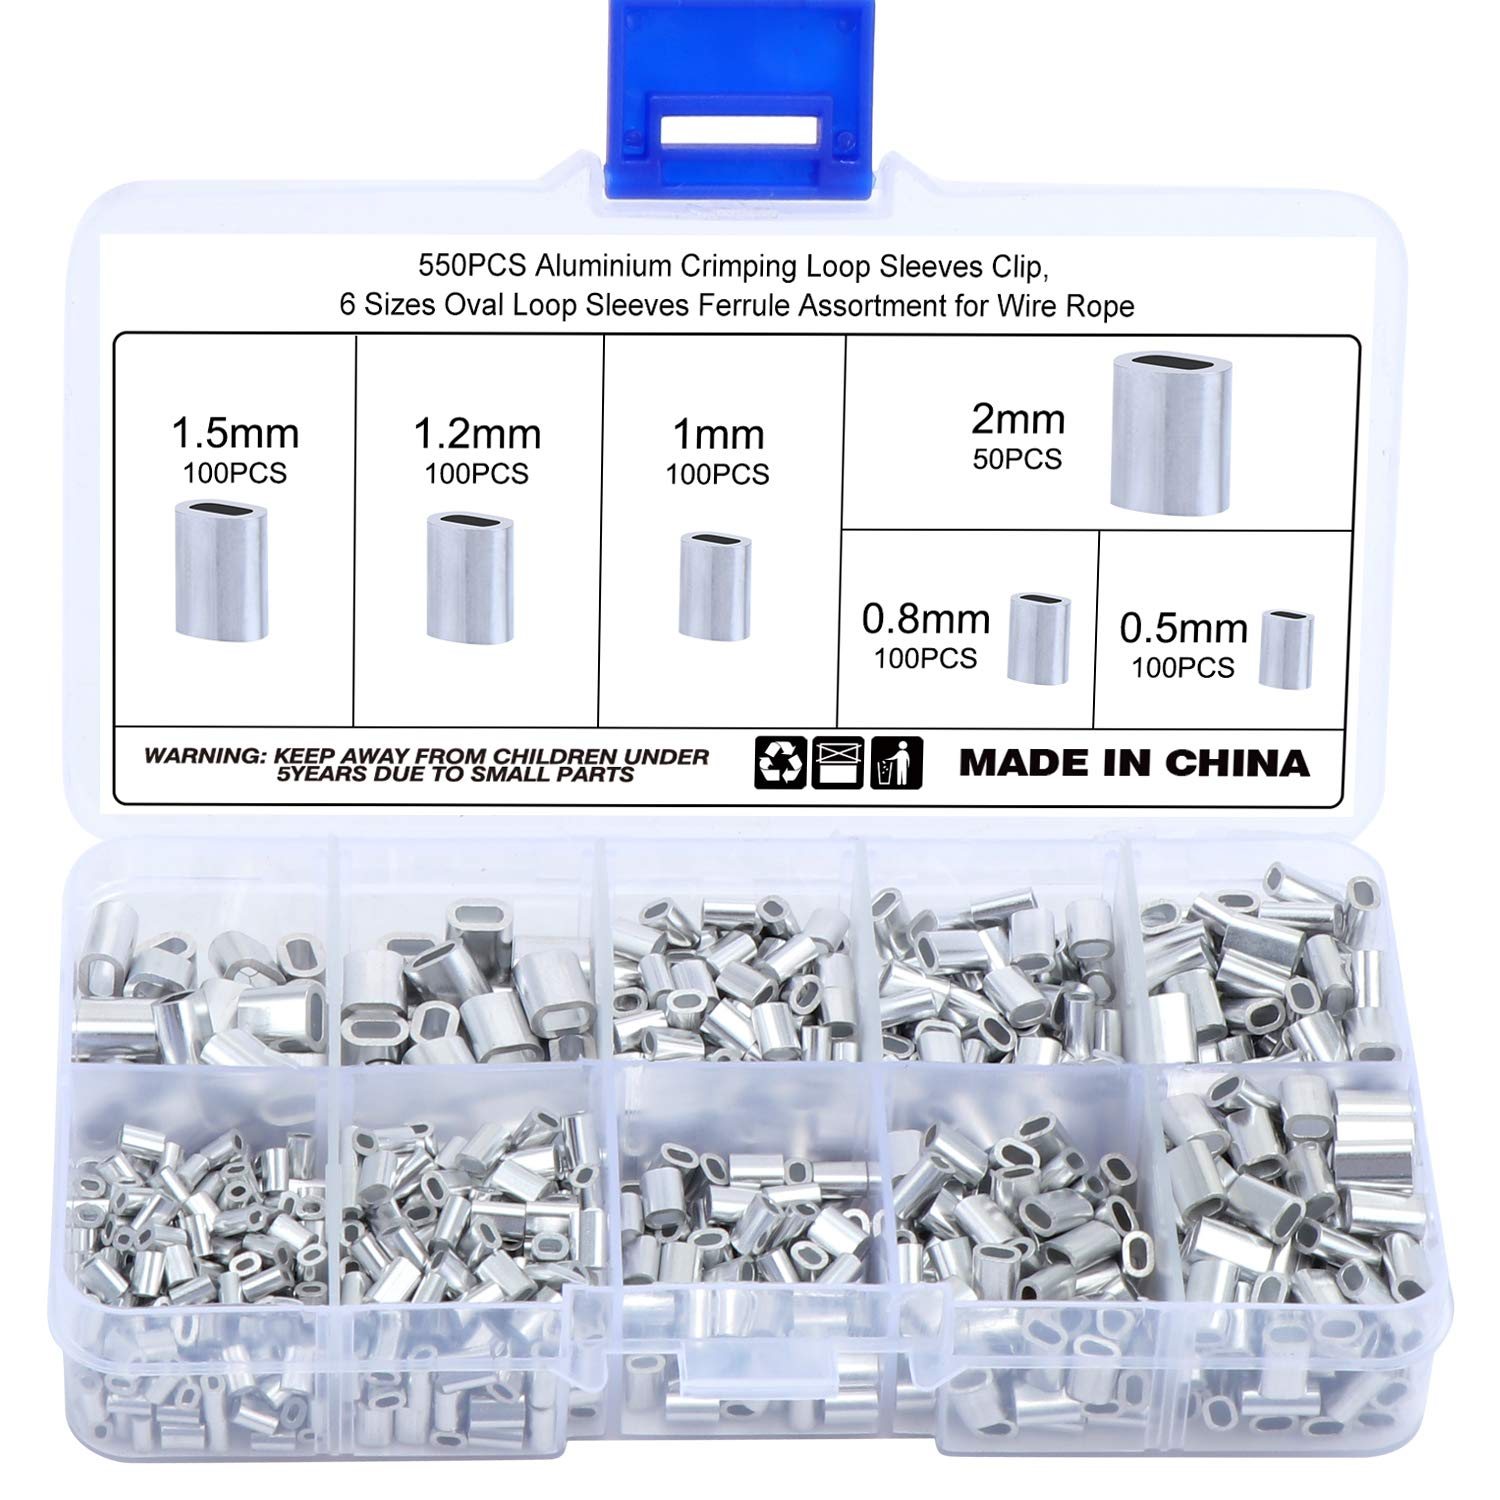 Aluminum Crimping Loop Sleeve Ferrule Assortment Kit 2mm for Wire Rope and Cable 100Pcs